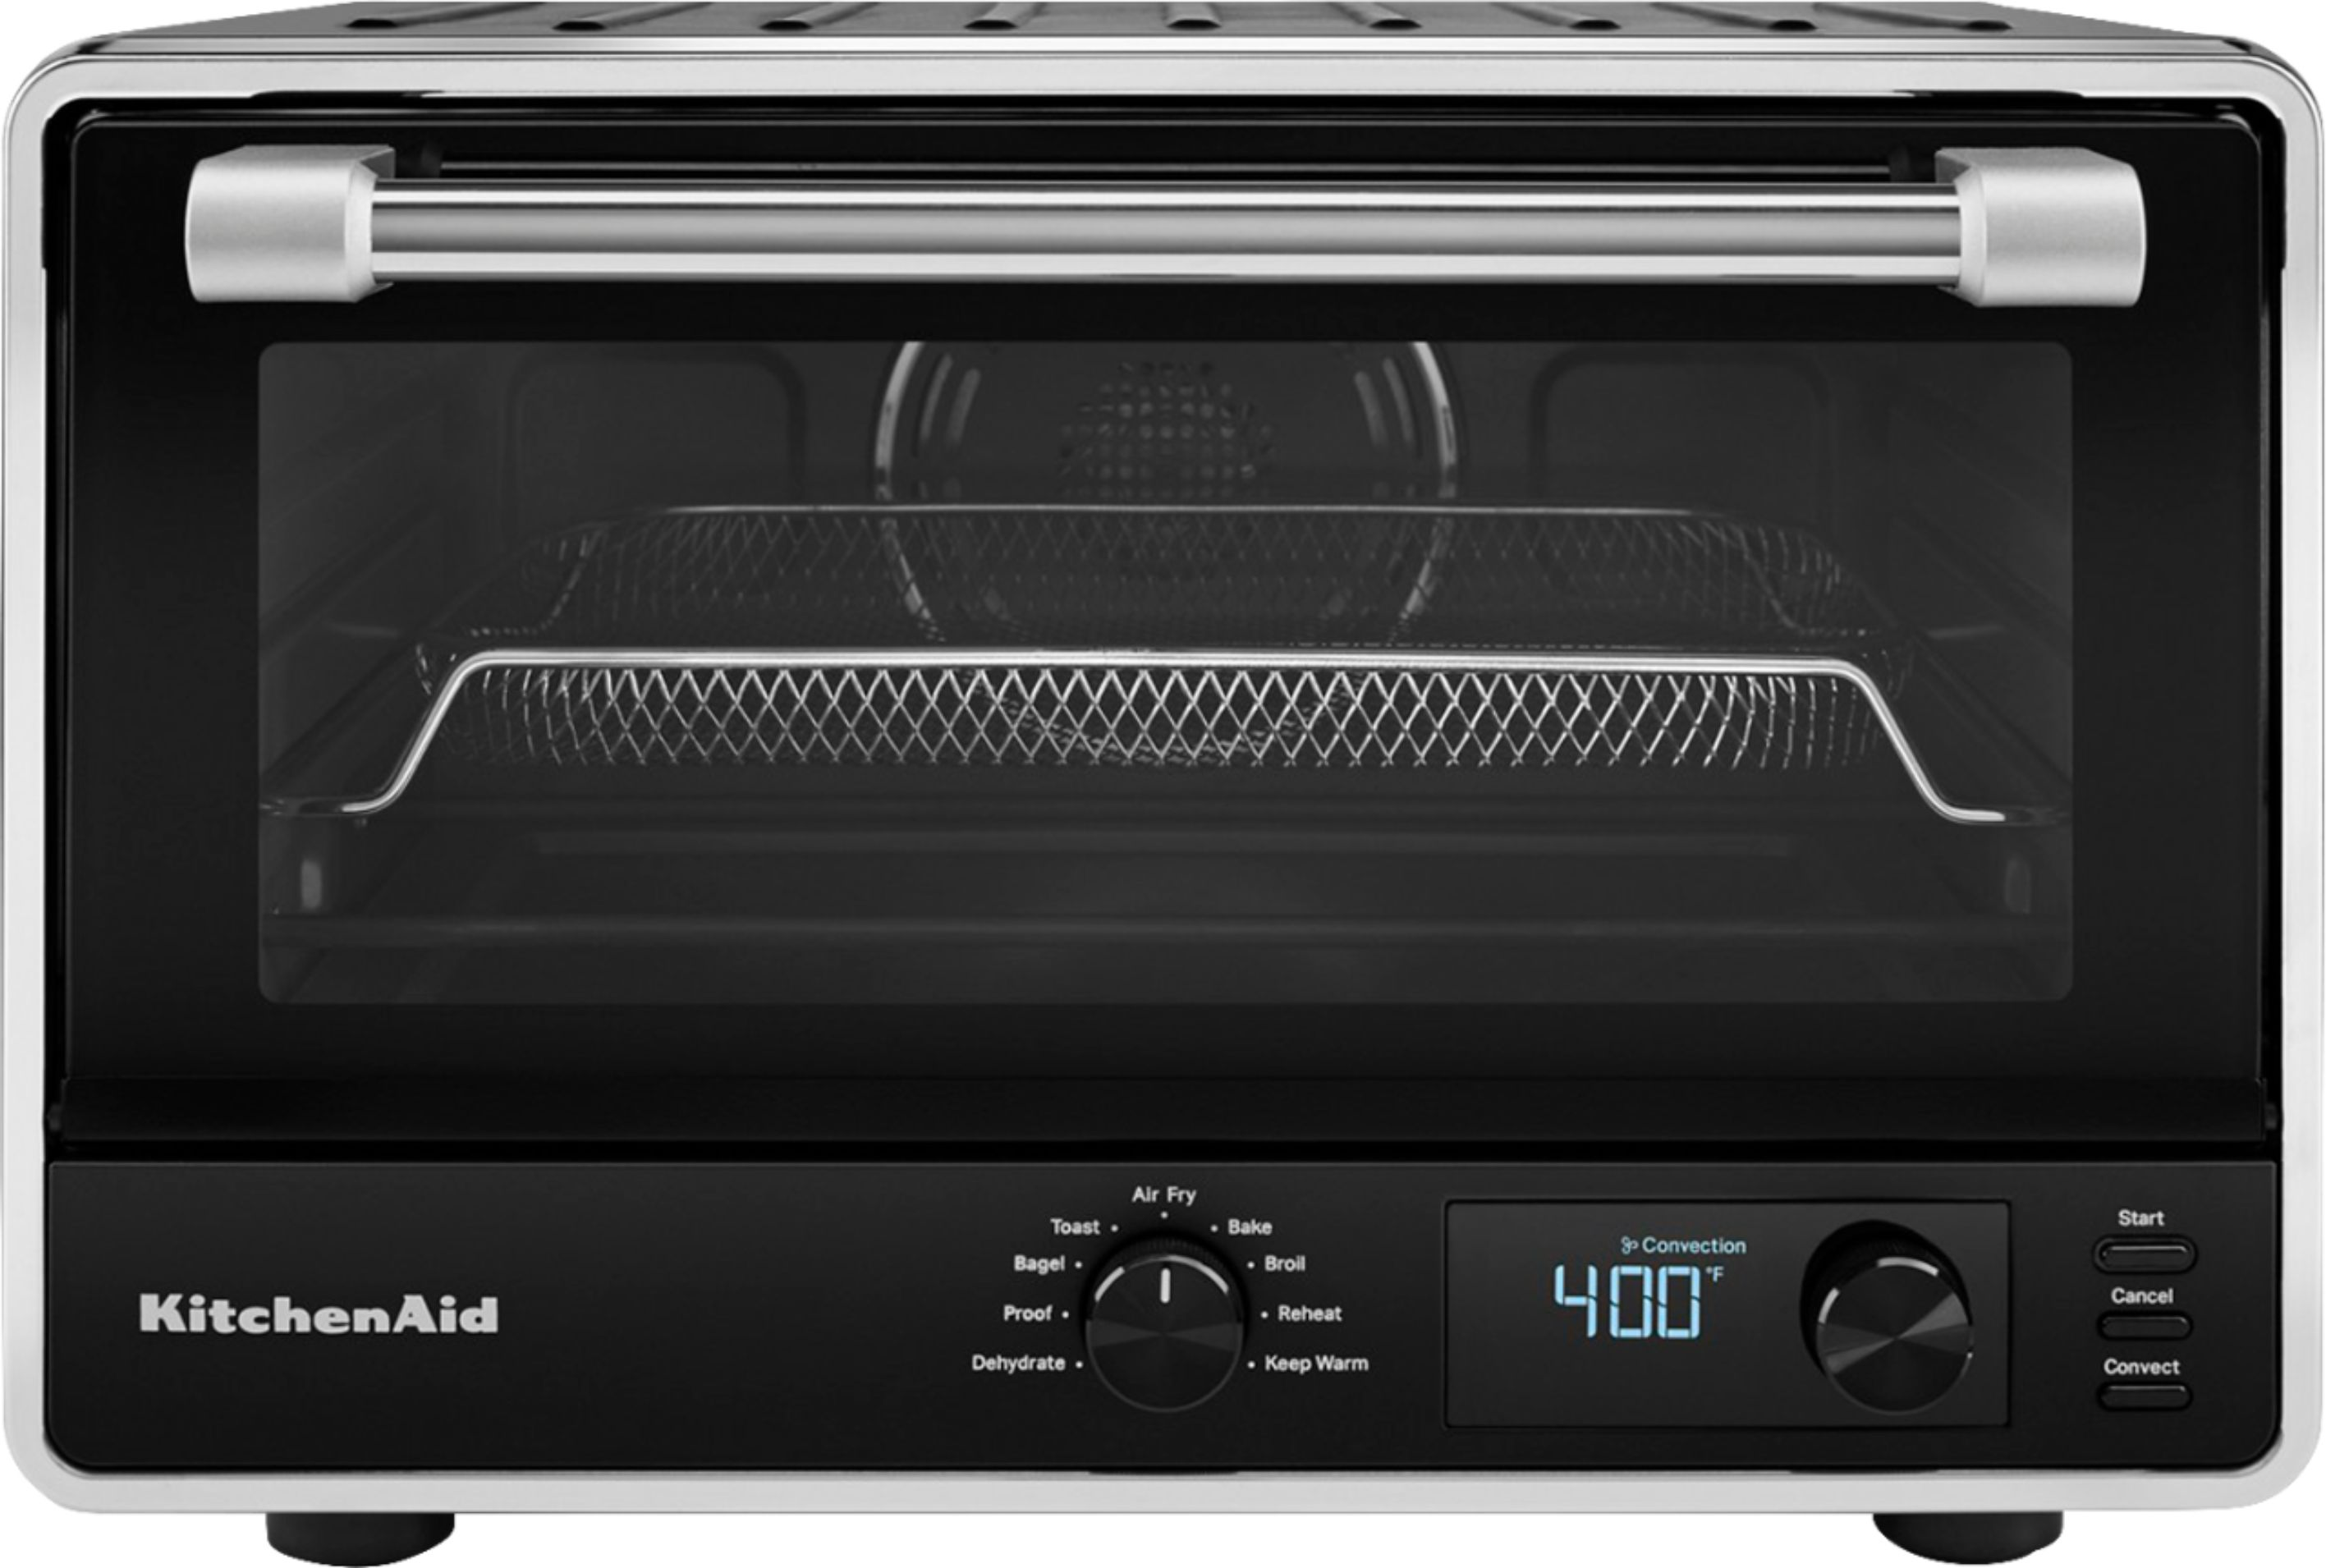 kitchenaid digital countertop oven with air fry black matte